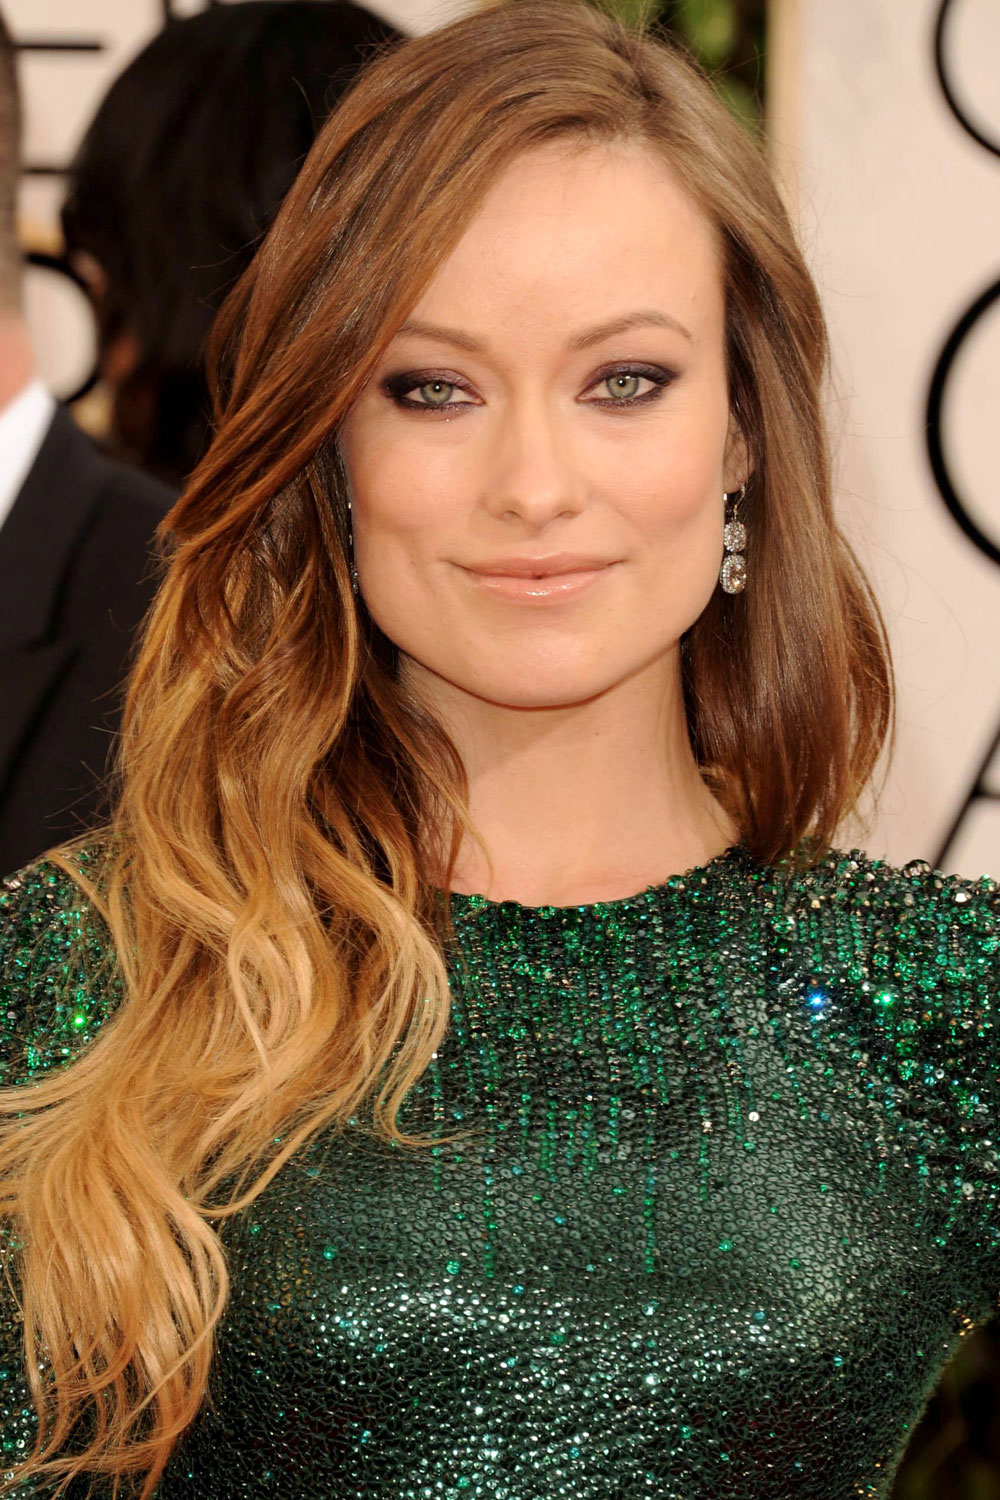 Ombre Hair: The Best Celebrity Looks And How To Get Them